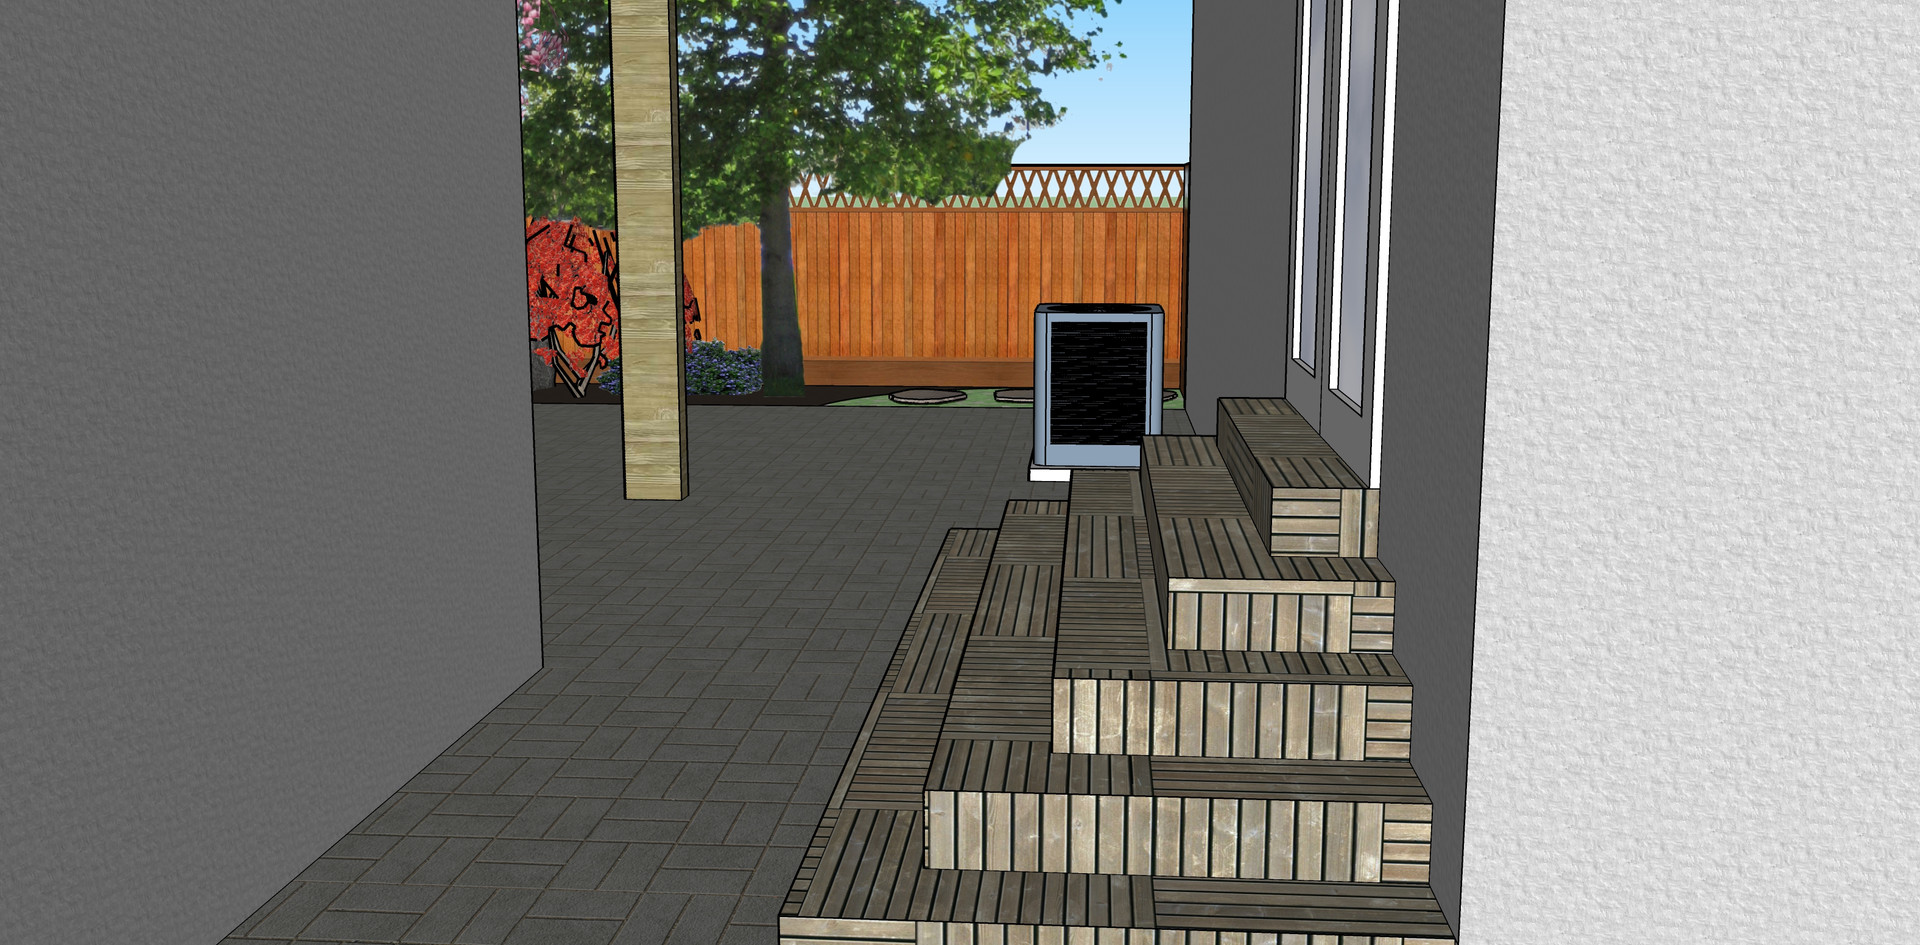 New exit out of back door